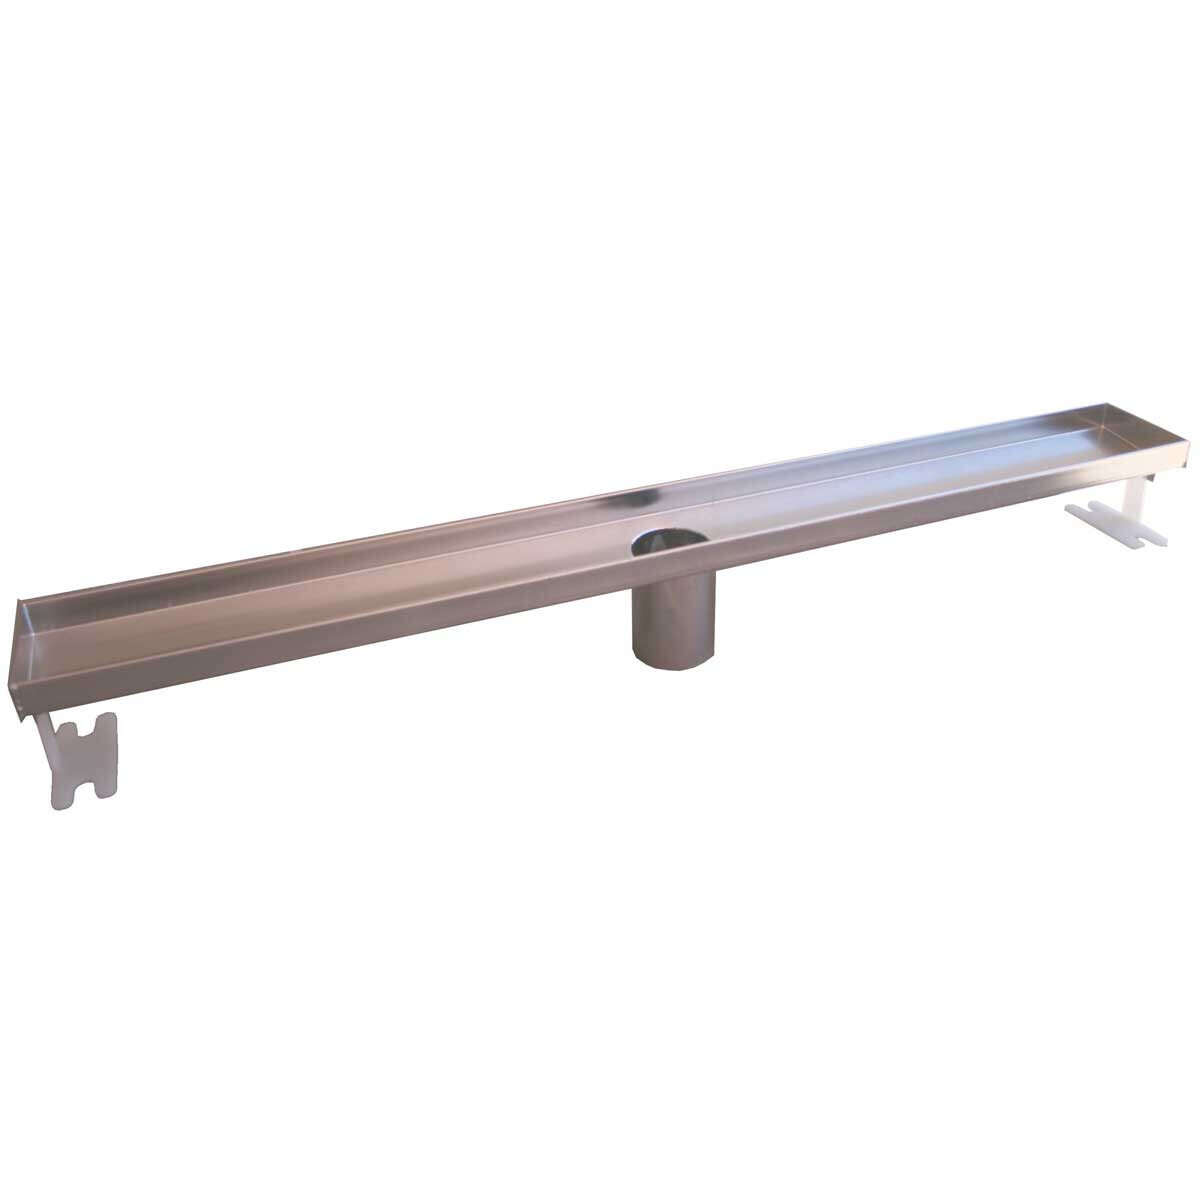 Aco Stainless Steel Shower Drain Channel